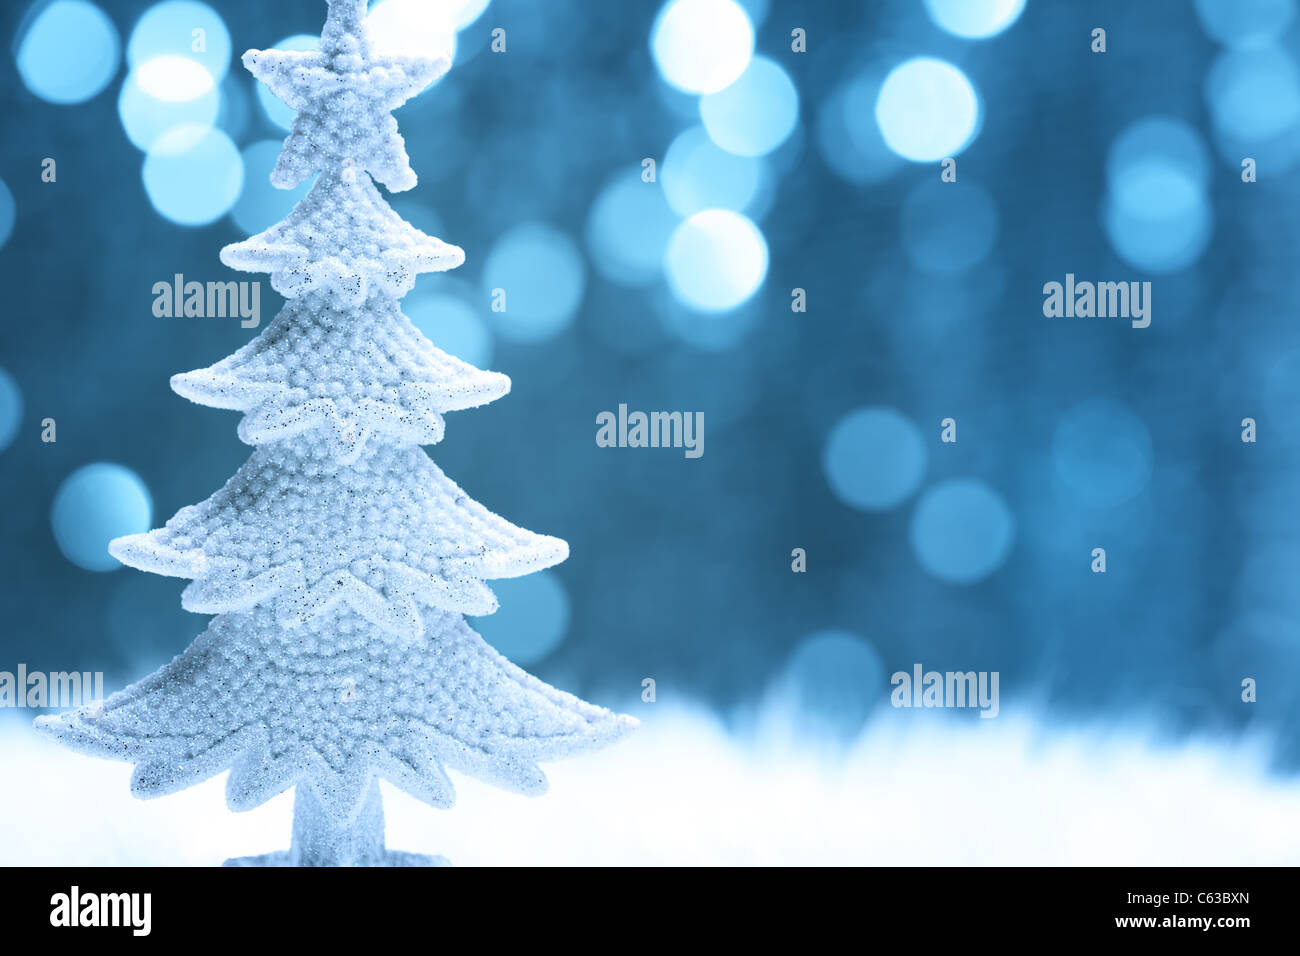 Christmas fir tree model on abstract background.Shallow Dof. - Stock Image